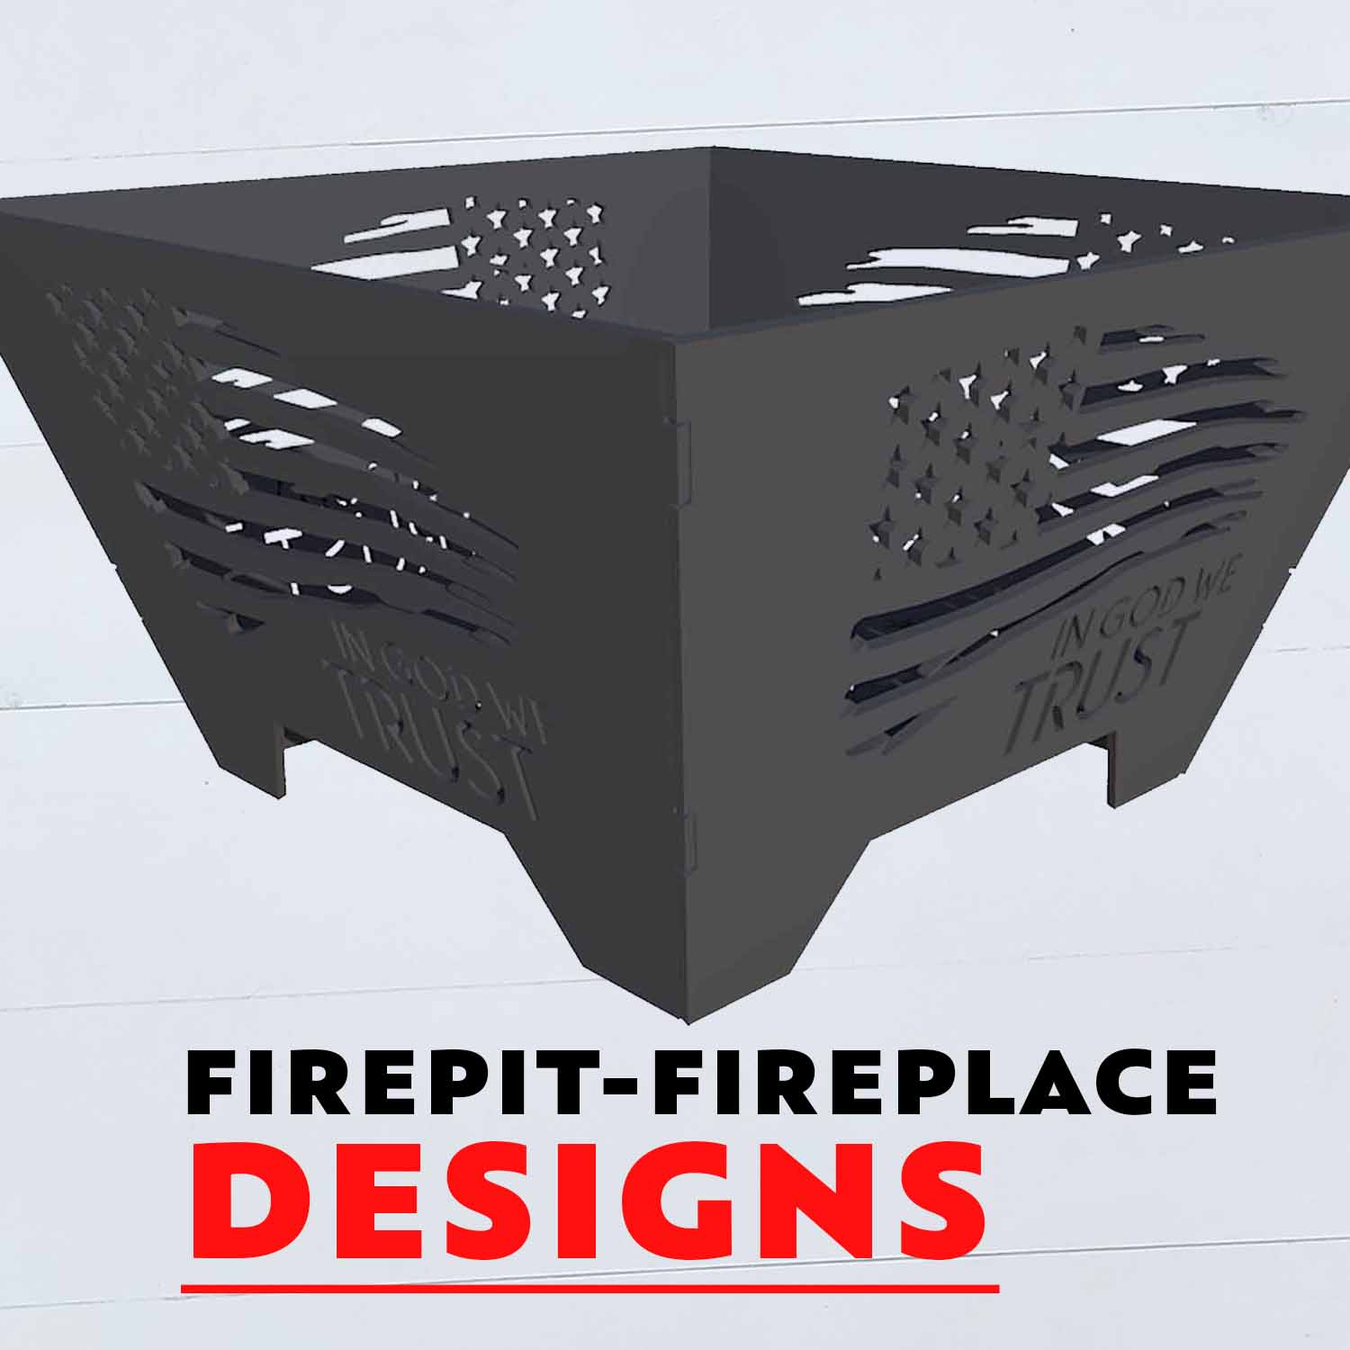 Firepit - Fireplace